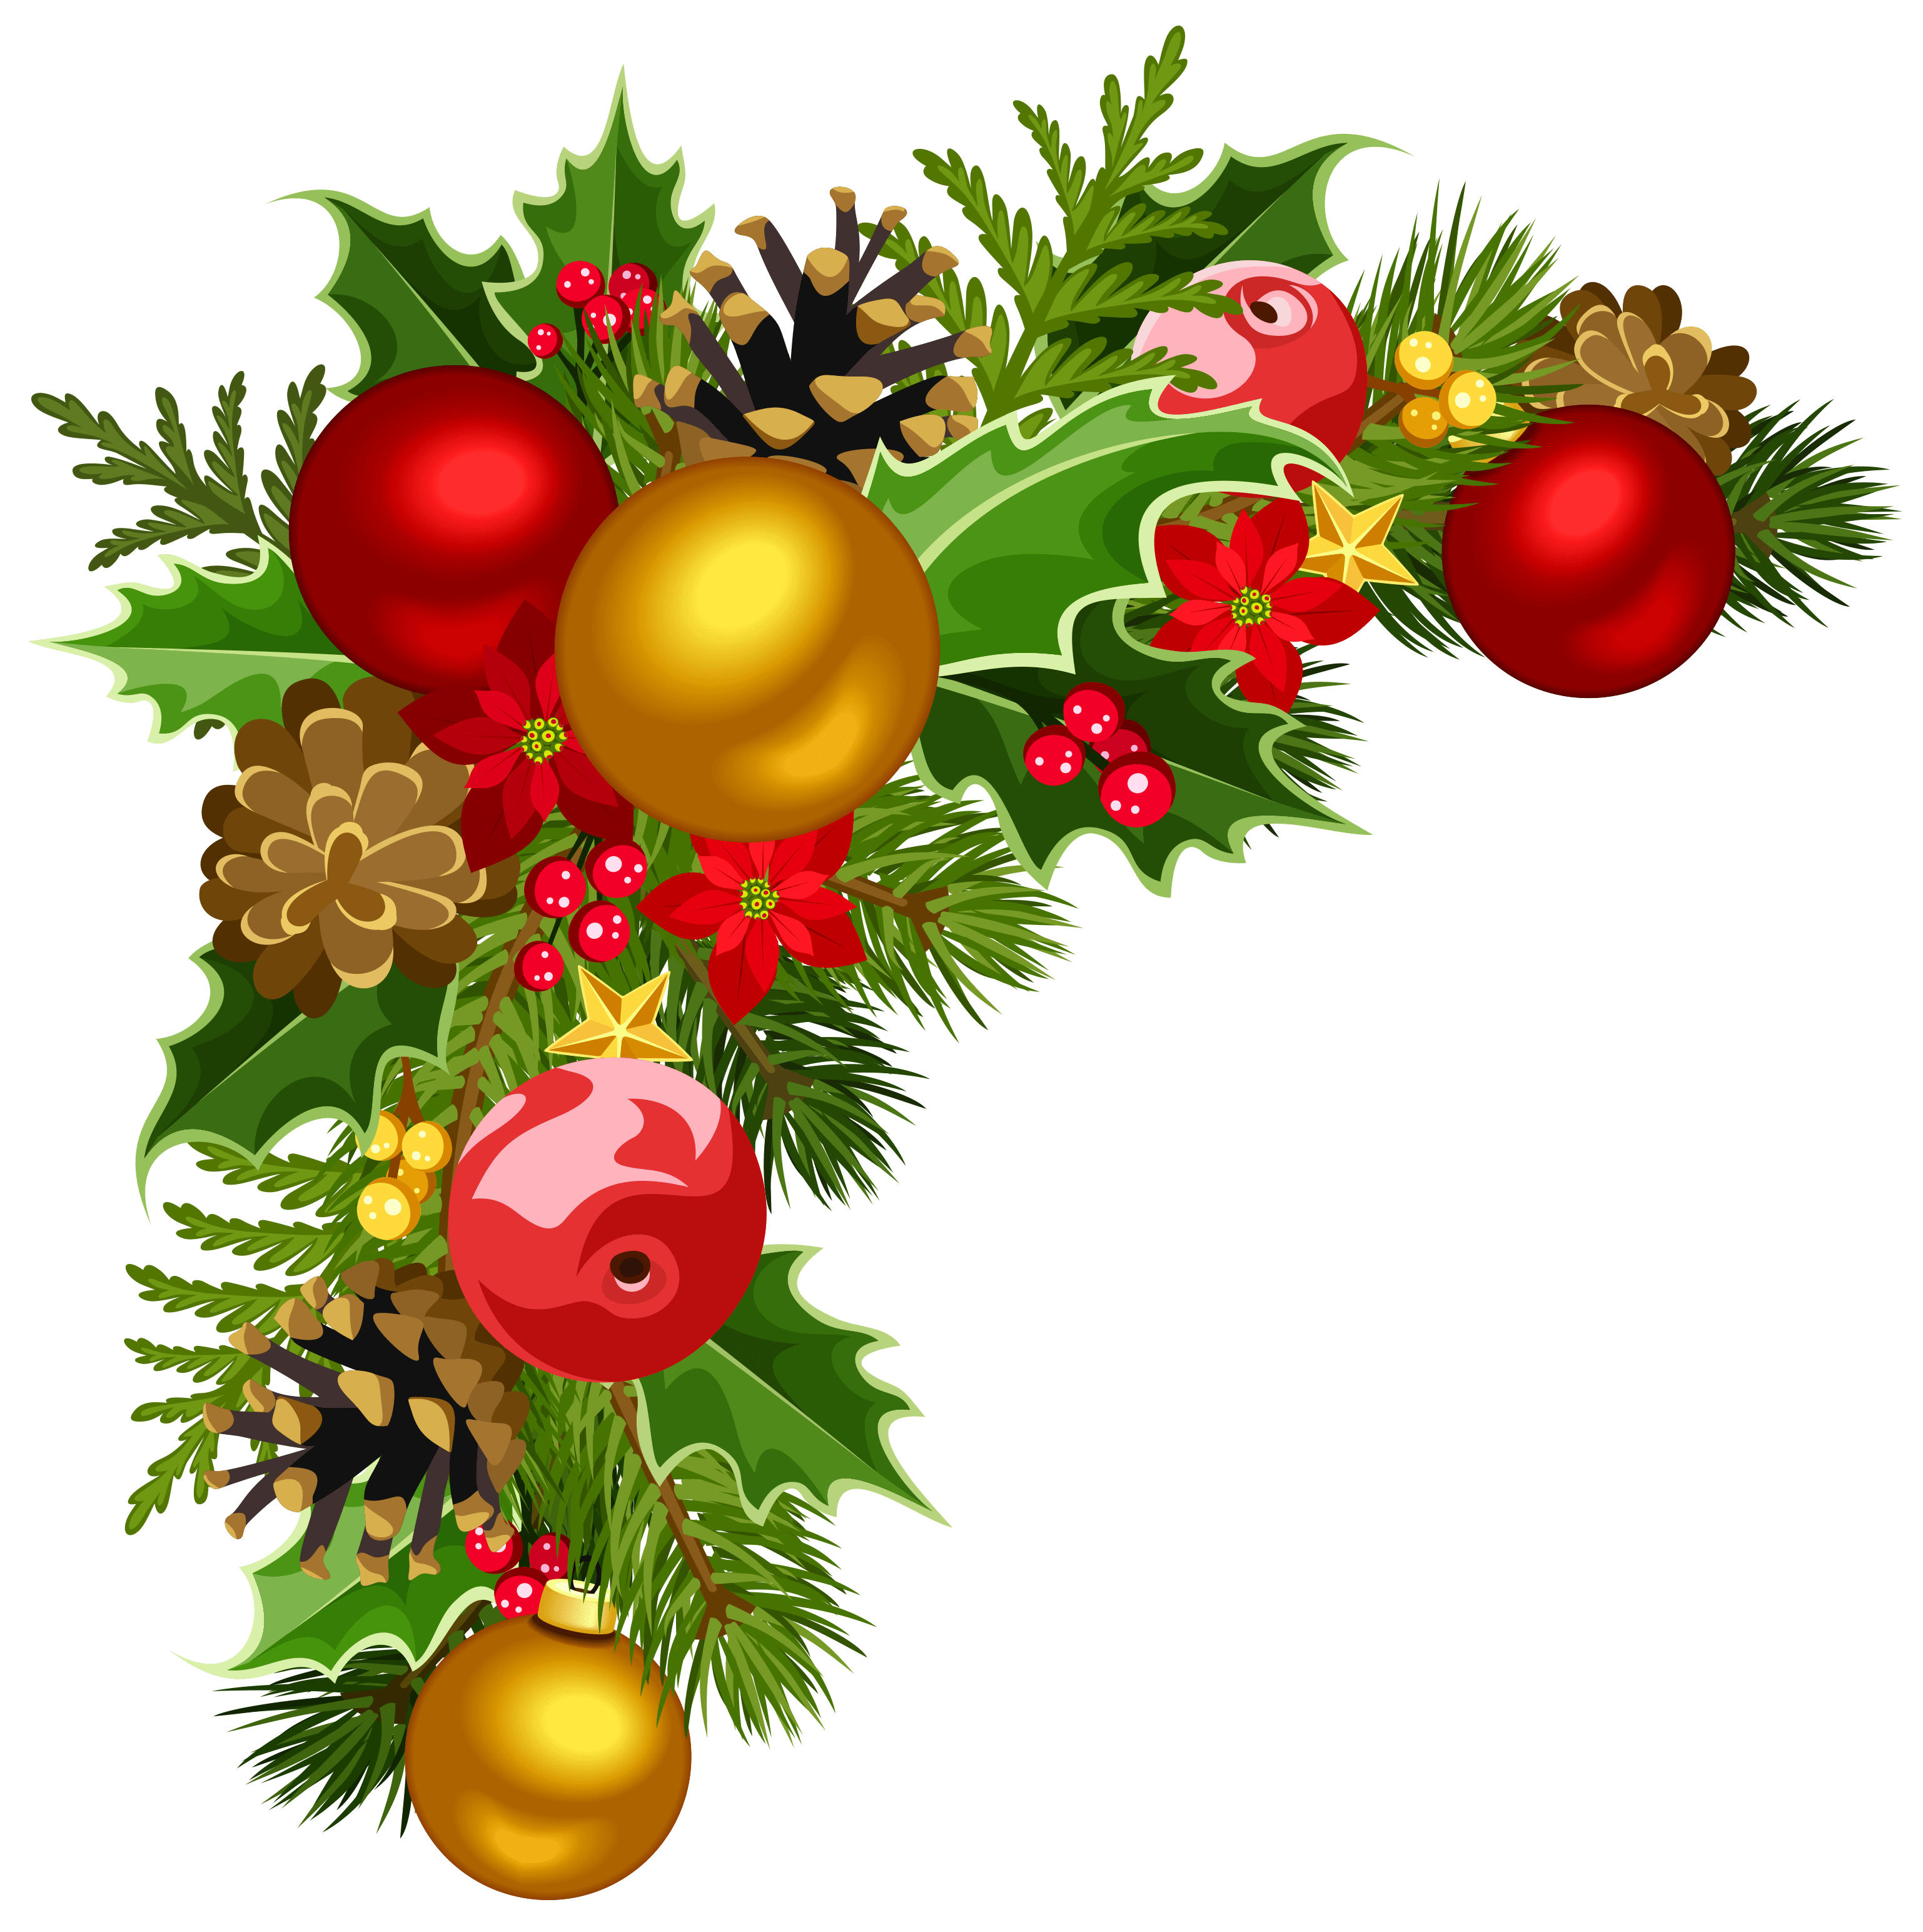 Christmas decor clipart transparent library Christmas Decorations Clipart – Merry Christmas And Happy New Year 2018 transparent library